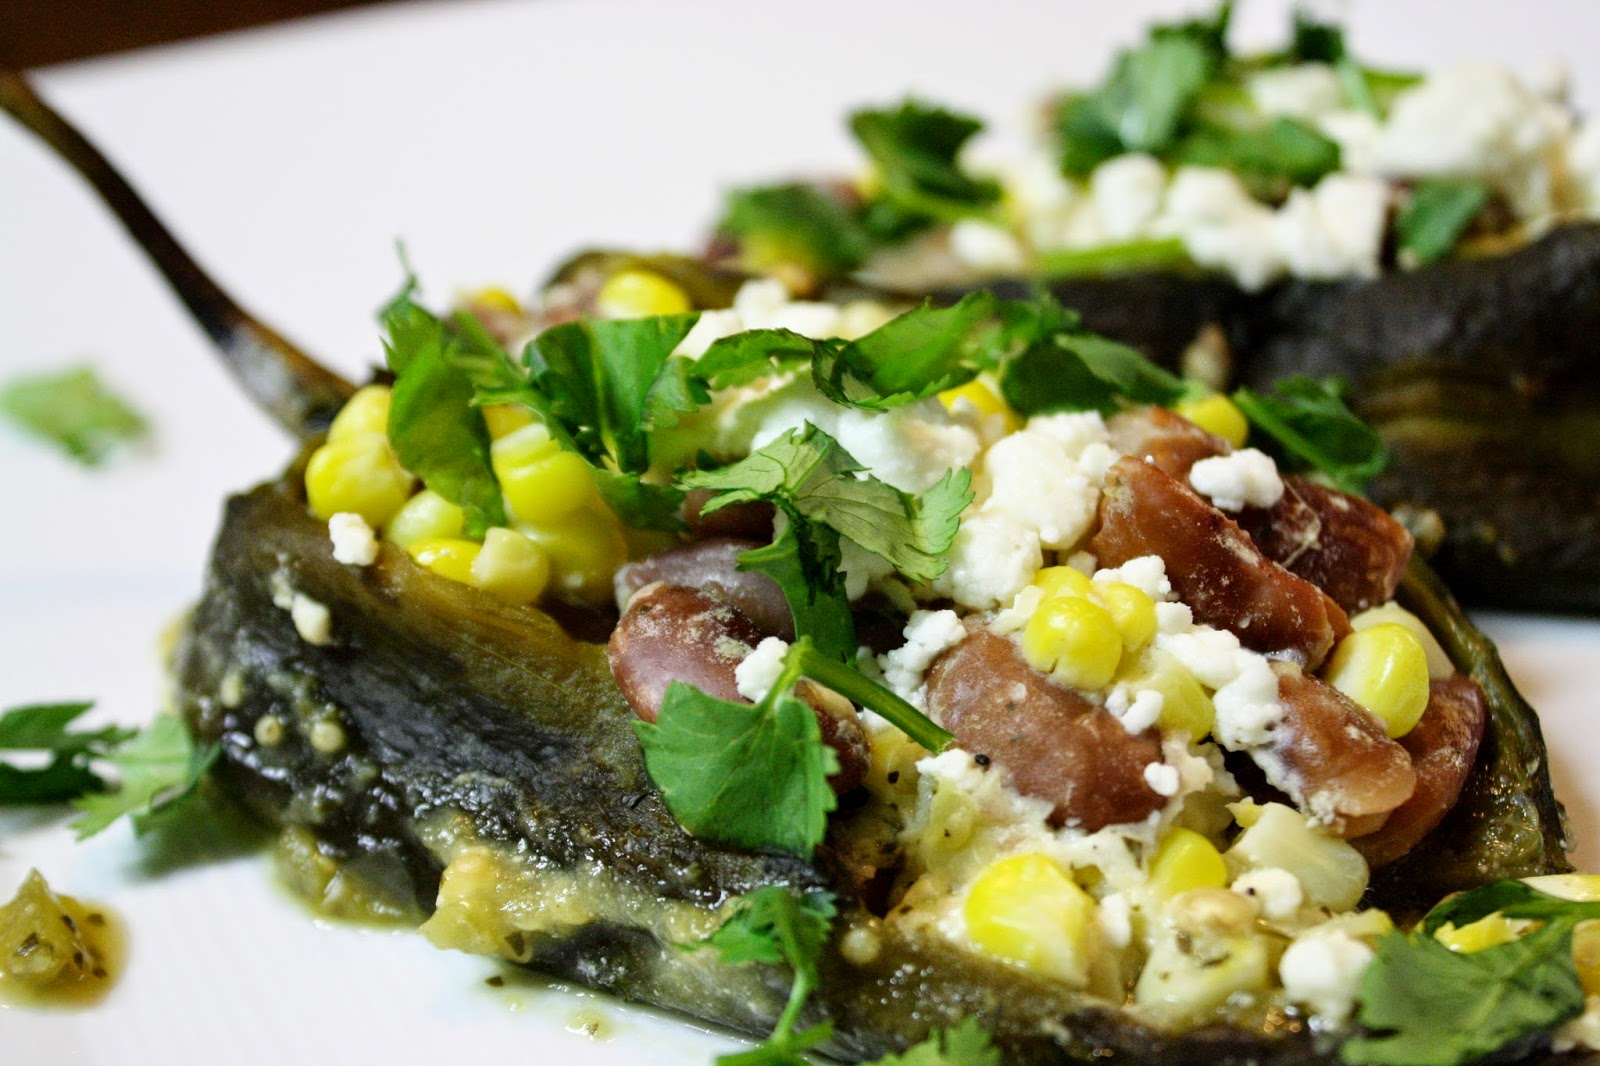 http://eatprayjuice.blogspot.com/2014/10/corn-and-bean-stuffed-poblano-chilies.html